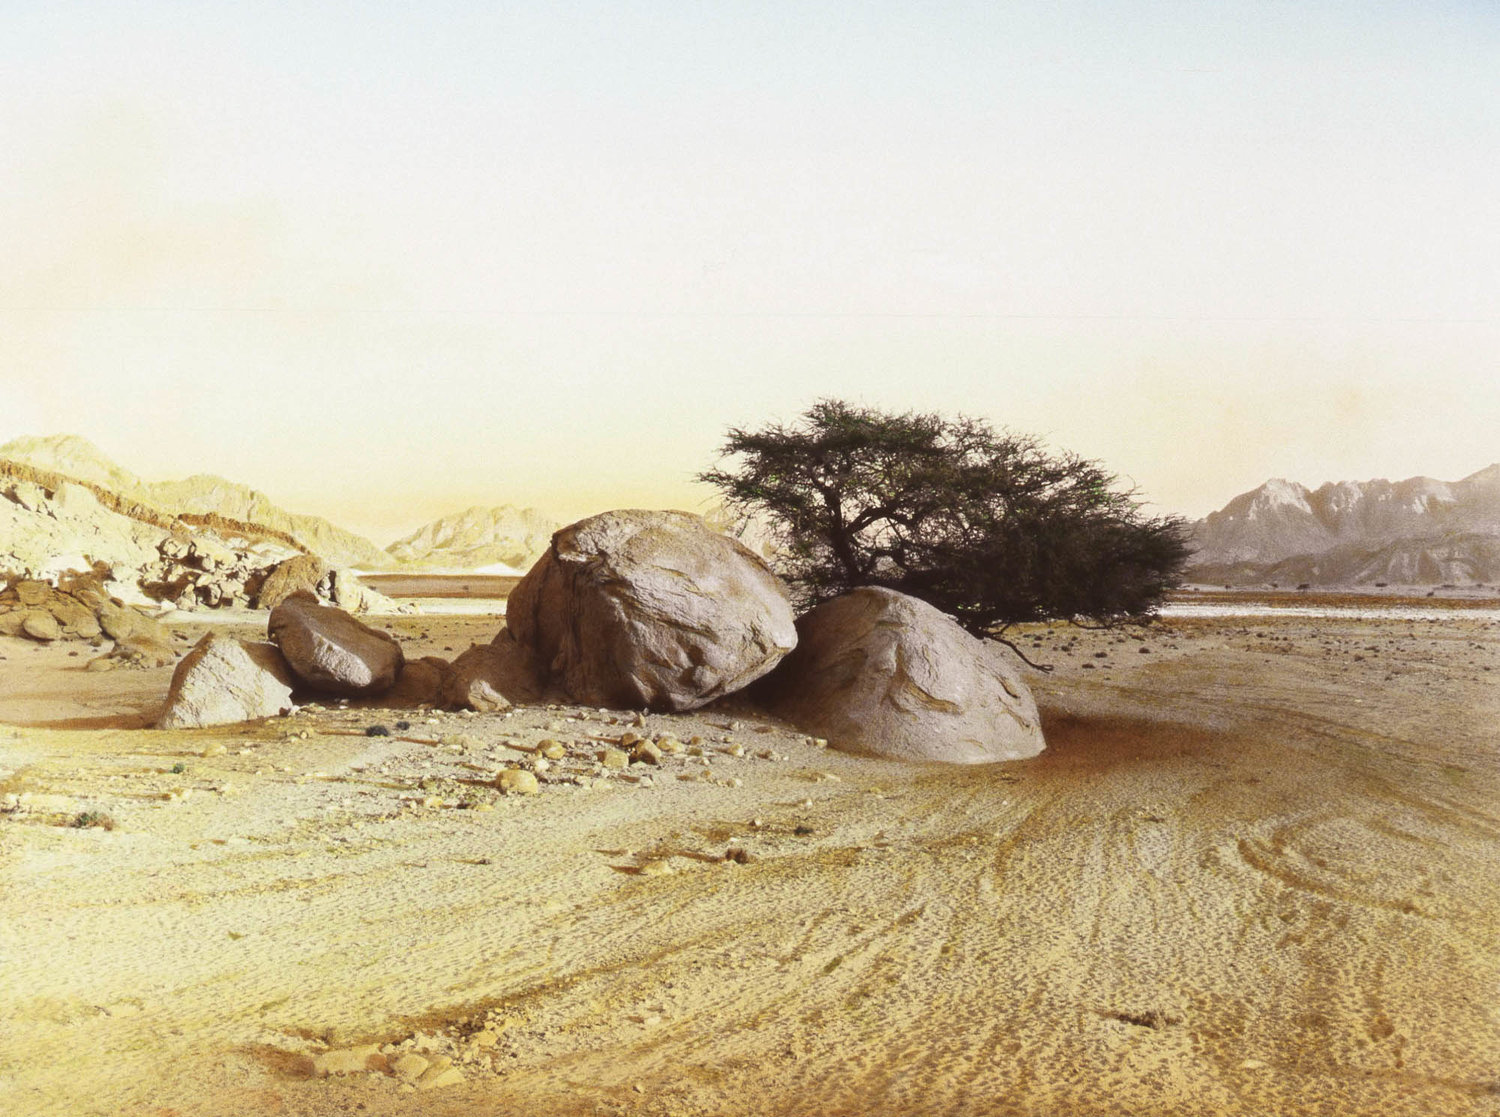 Barry+Iverson,+Two+boulders+and+tree,+Wadi+Masar,+South+Sinai,+1995.jpg